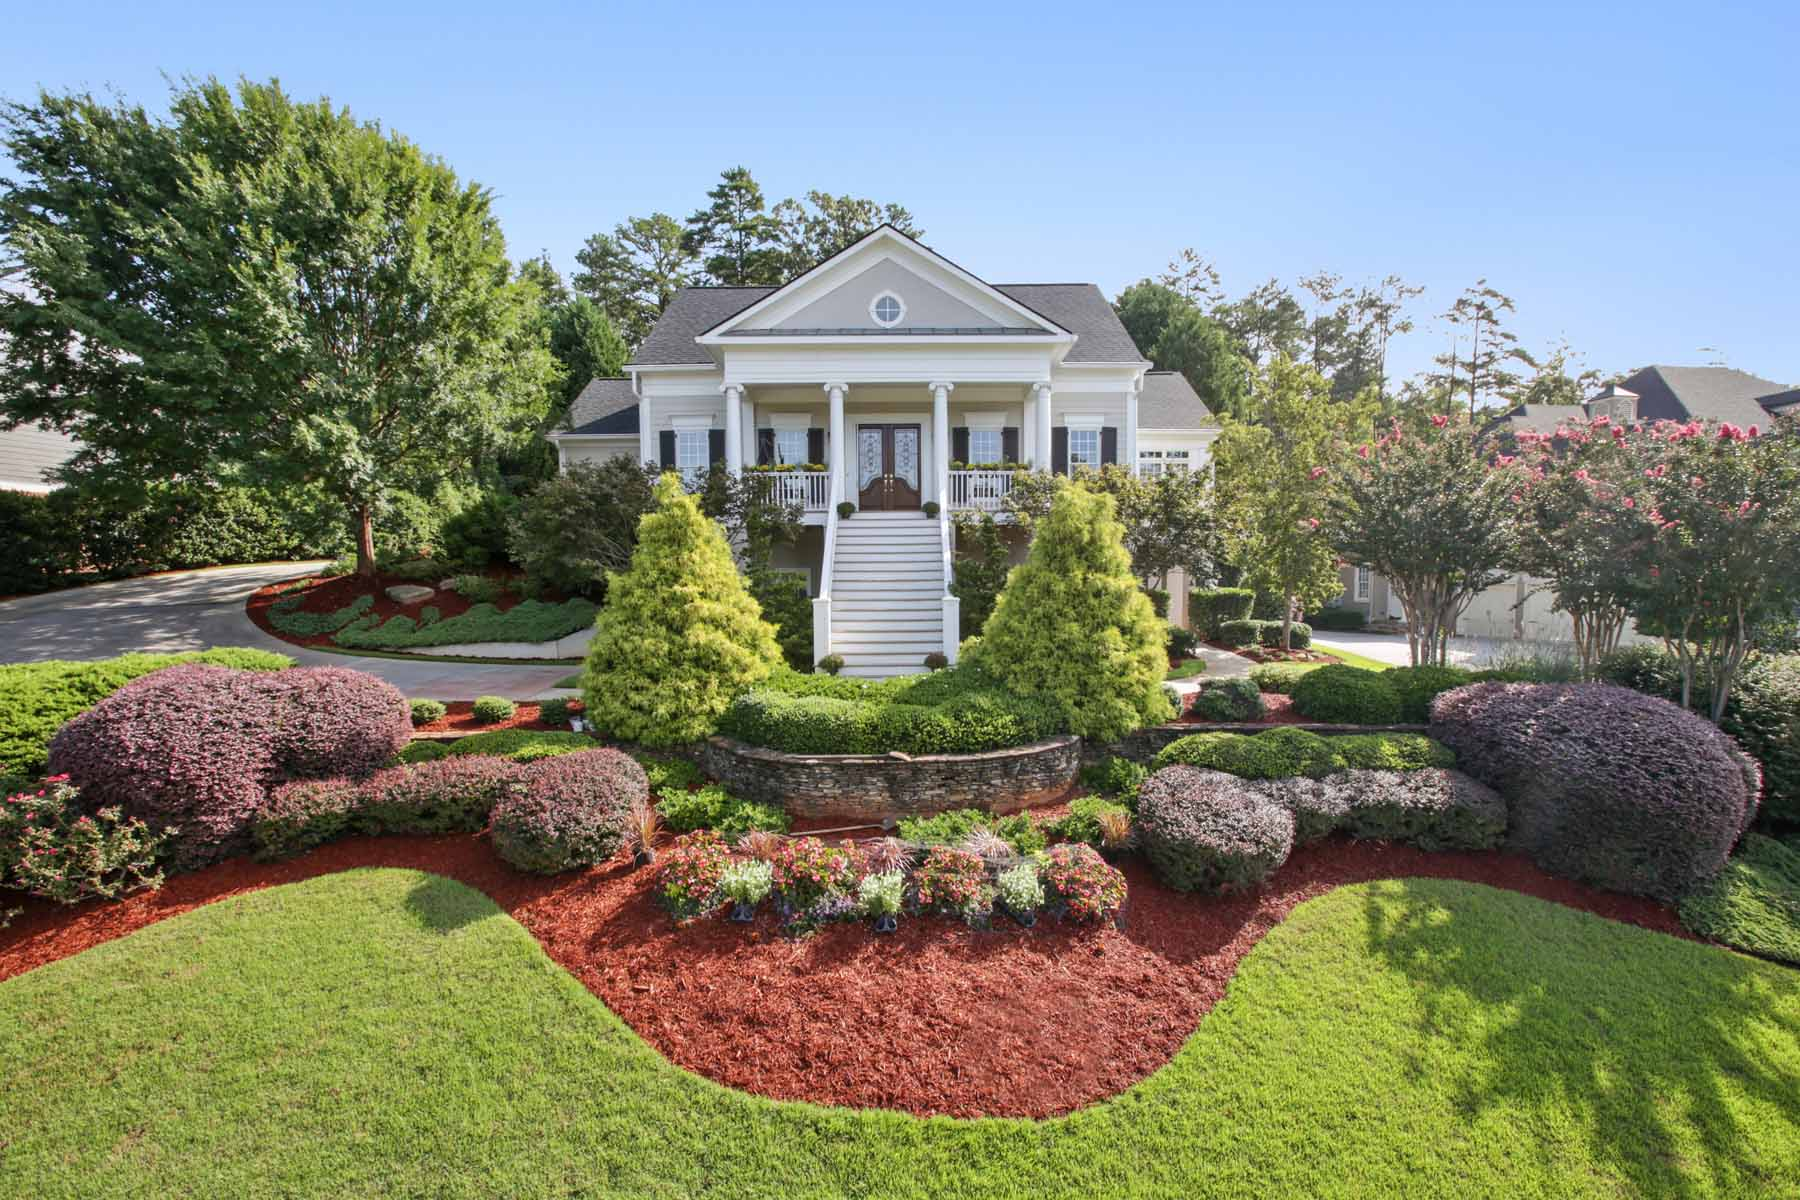 Maison unifamiliale pour l Vente à Stunning North Peachtree City Location, easy access to airport and Atlanta. 108 Peninsula Drive Peachtree City, Georgia, 30269 États-Unis